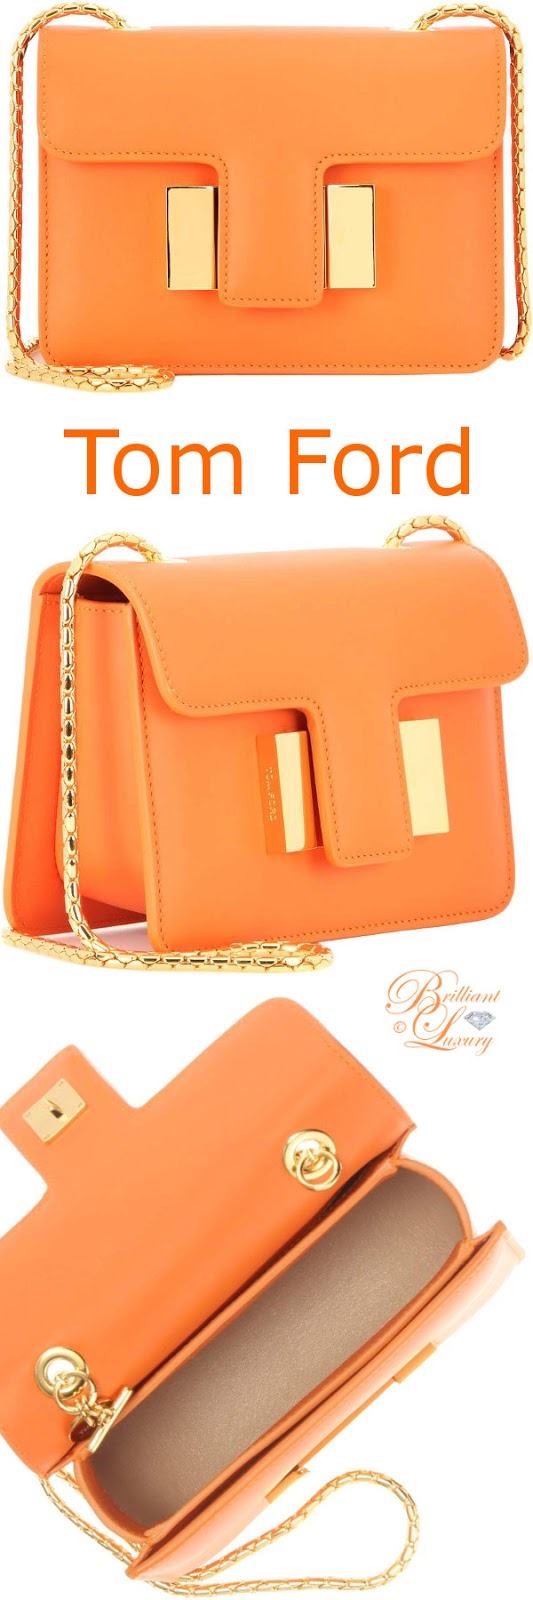 Brilliant Luxury ♦ Tom Ford Sienna leather shoulder bag #orange